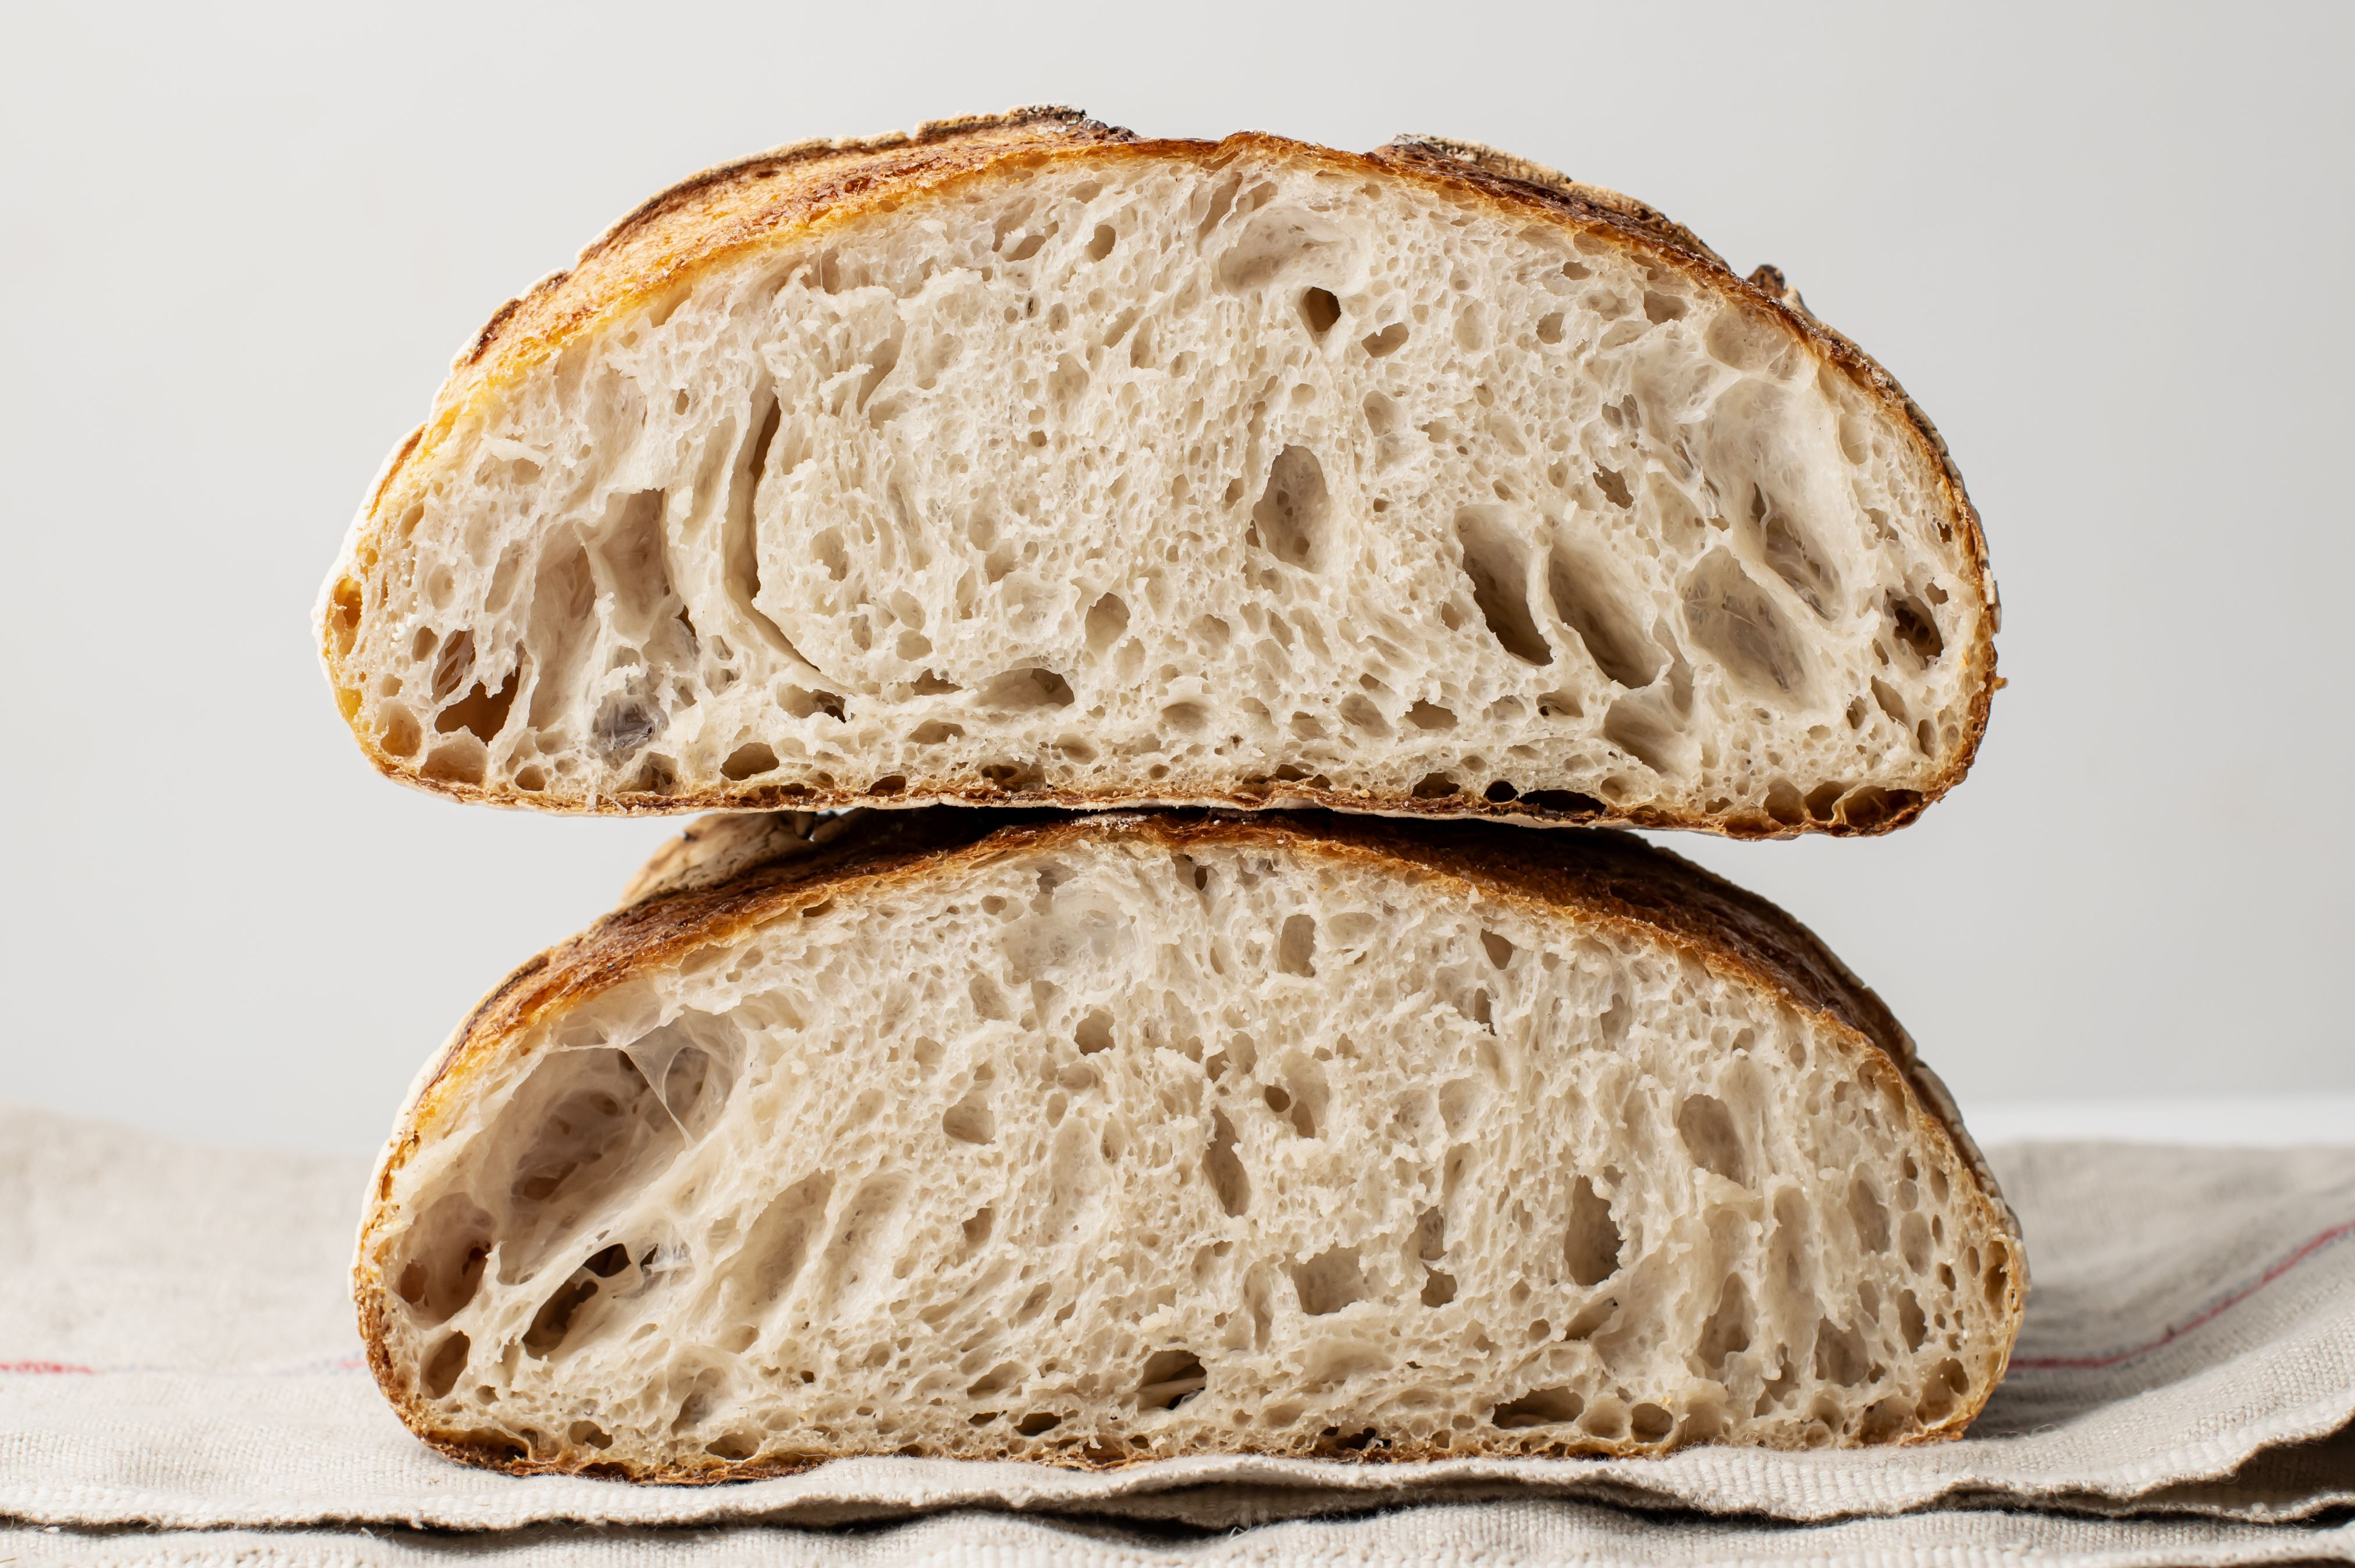 Bread Baking cover image